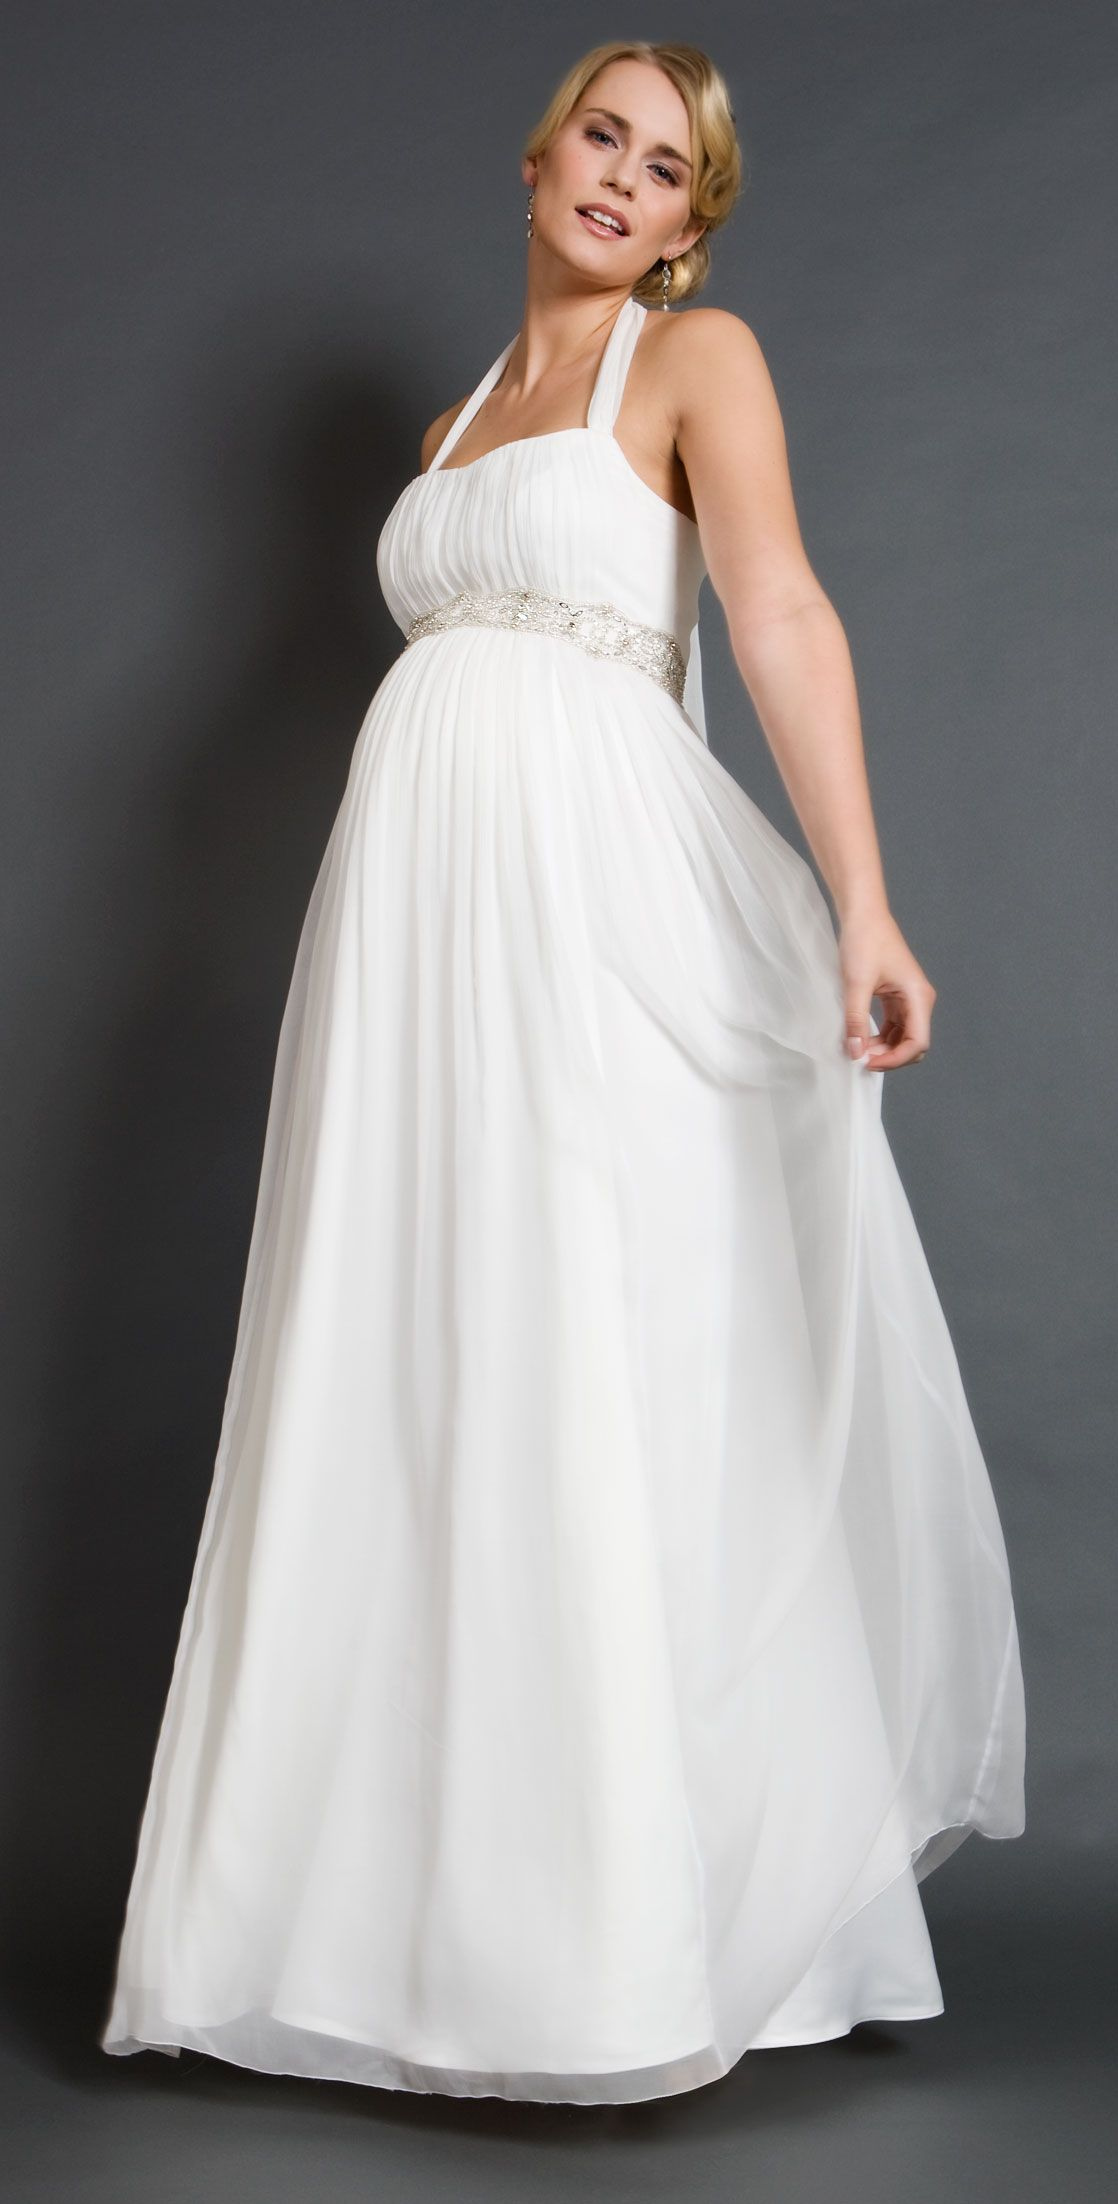 Alya silk bridal gown long wedding dresses bridal gowns and